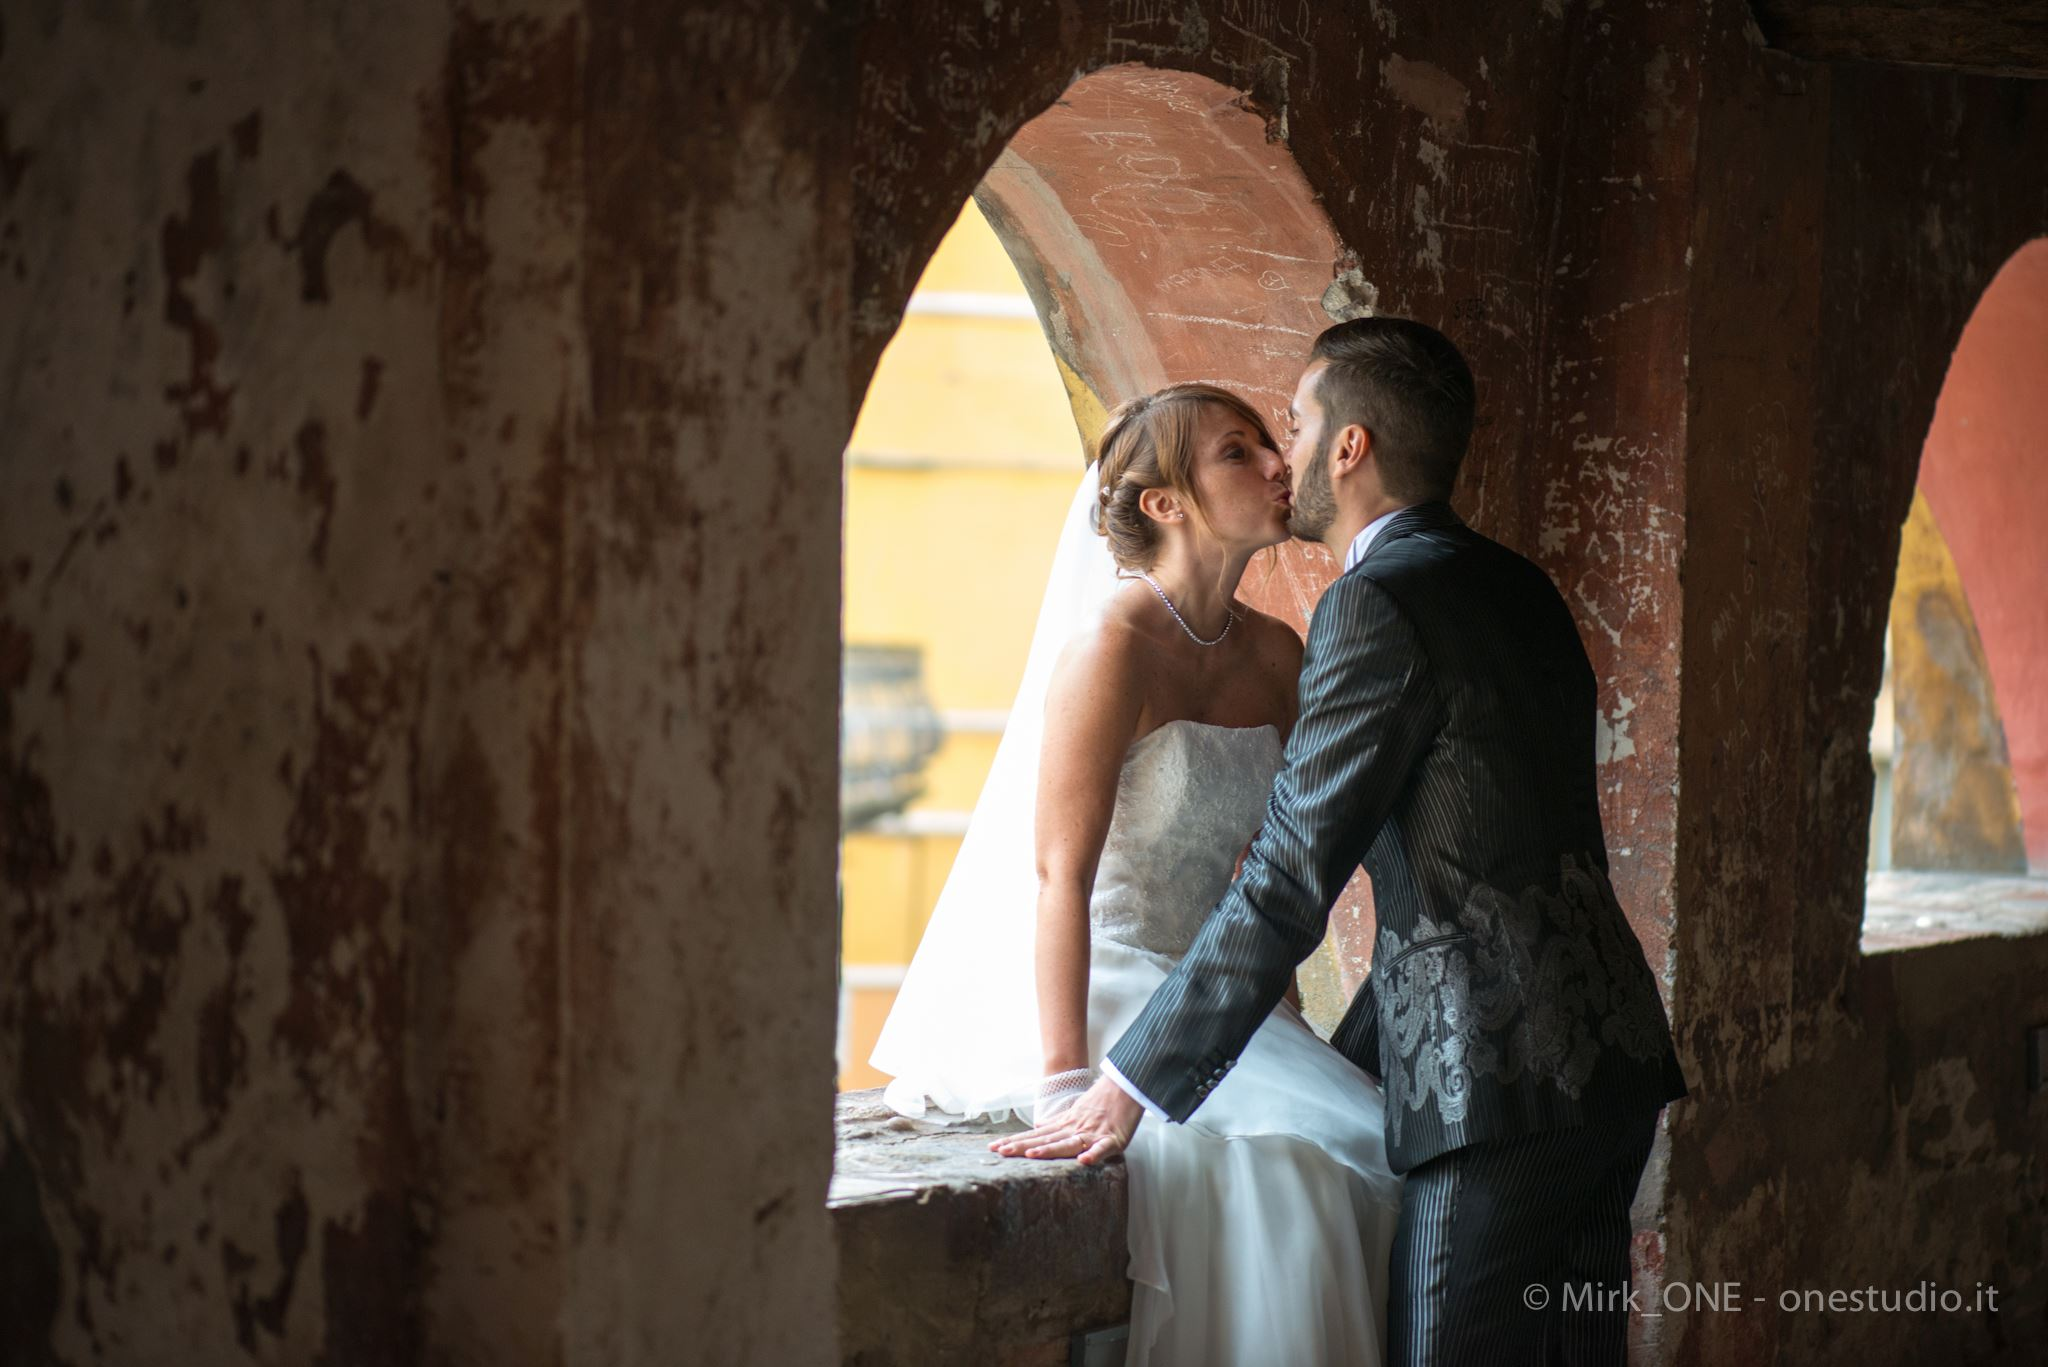 http://lnx.mirkone.it/wp-content/uploads/2015/07/mirk_ONE-fotografo-matrimonio-00833.jpg